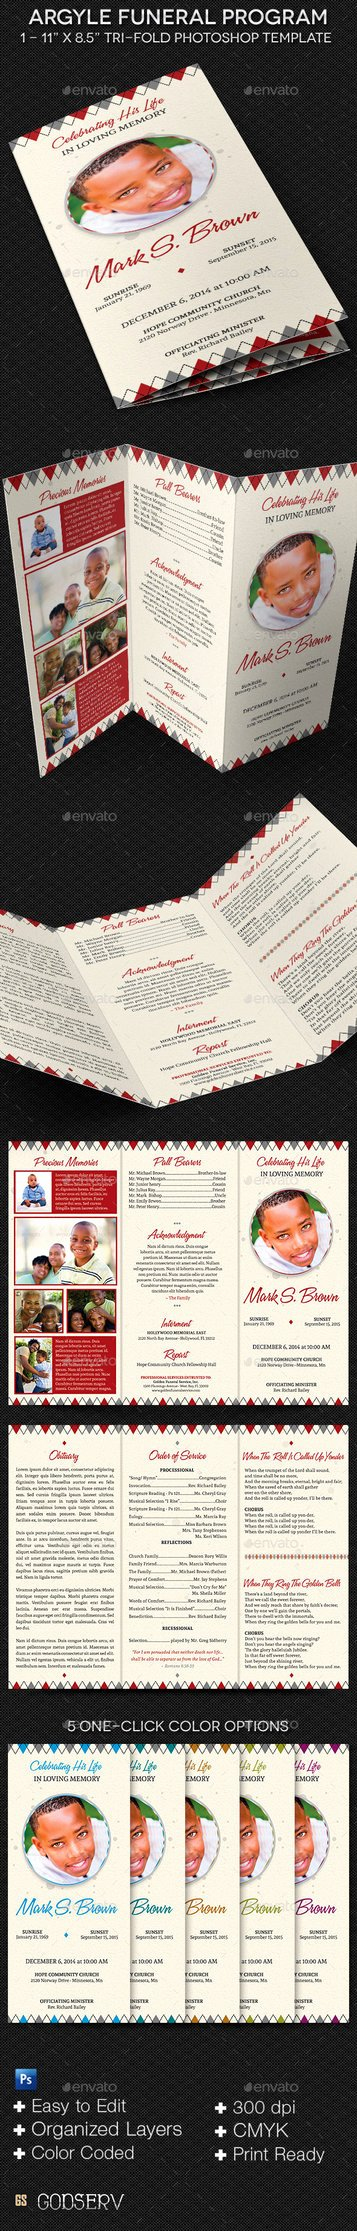 Tri Fold Funeral Program Template Awesome Argyle Tri Fold Funeral Program Template by Godserv On